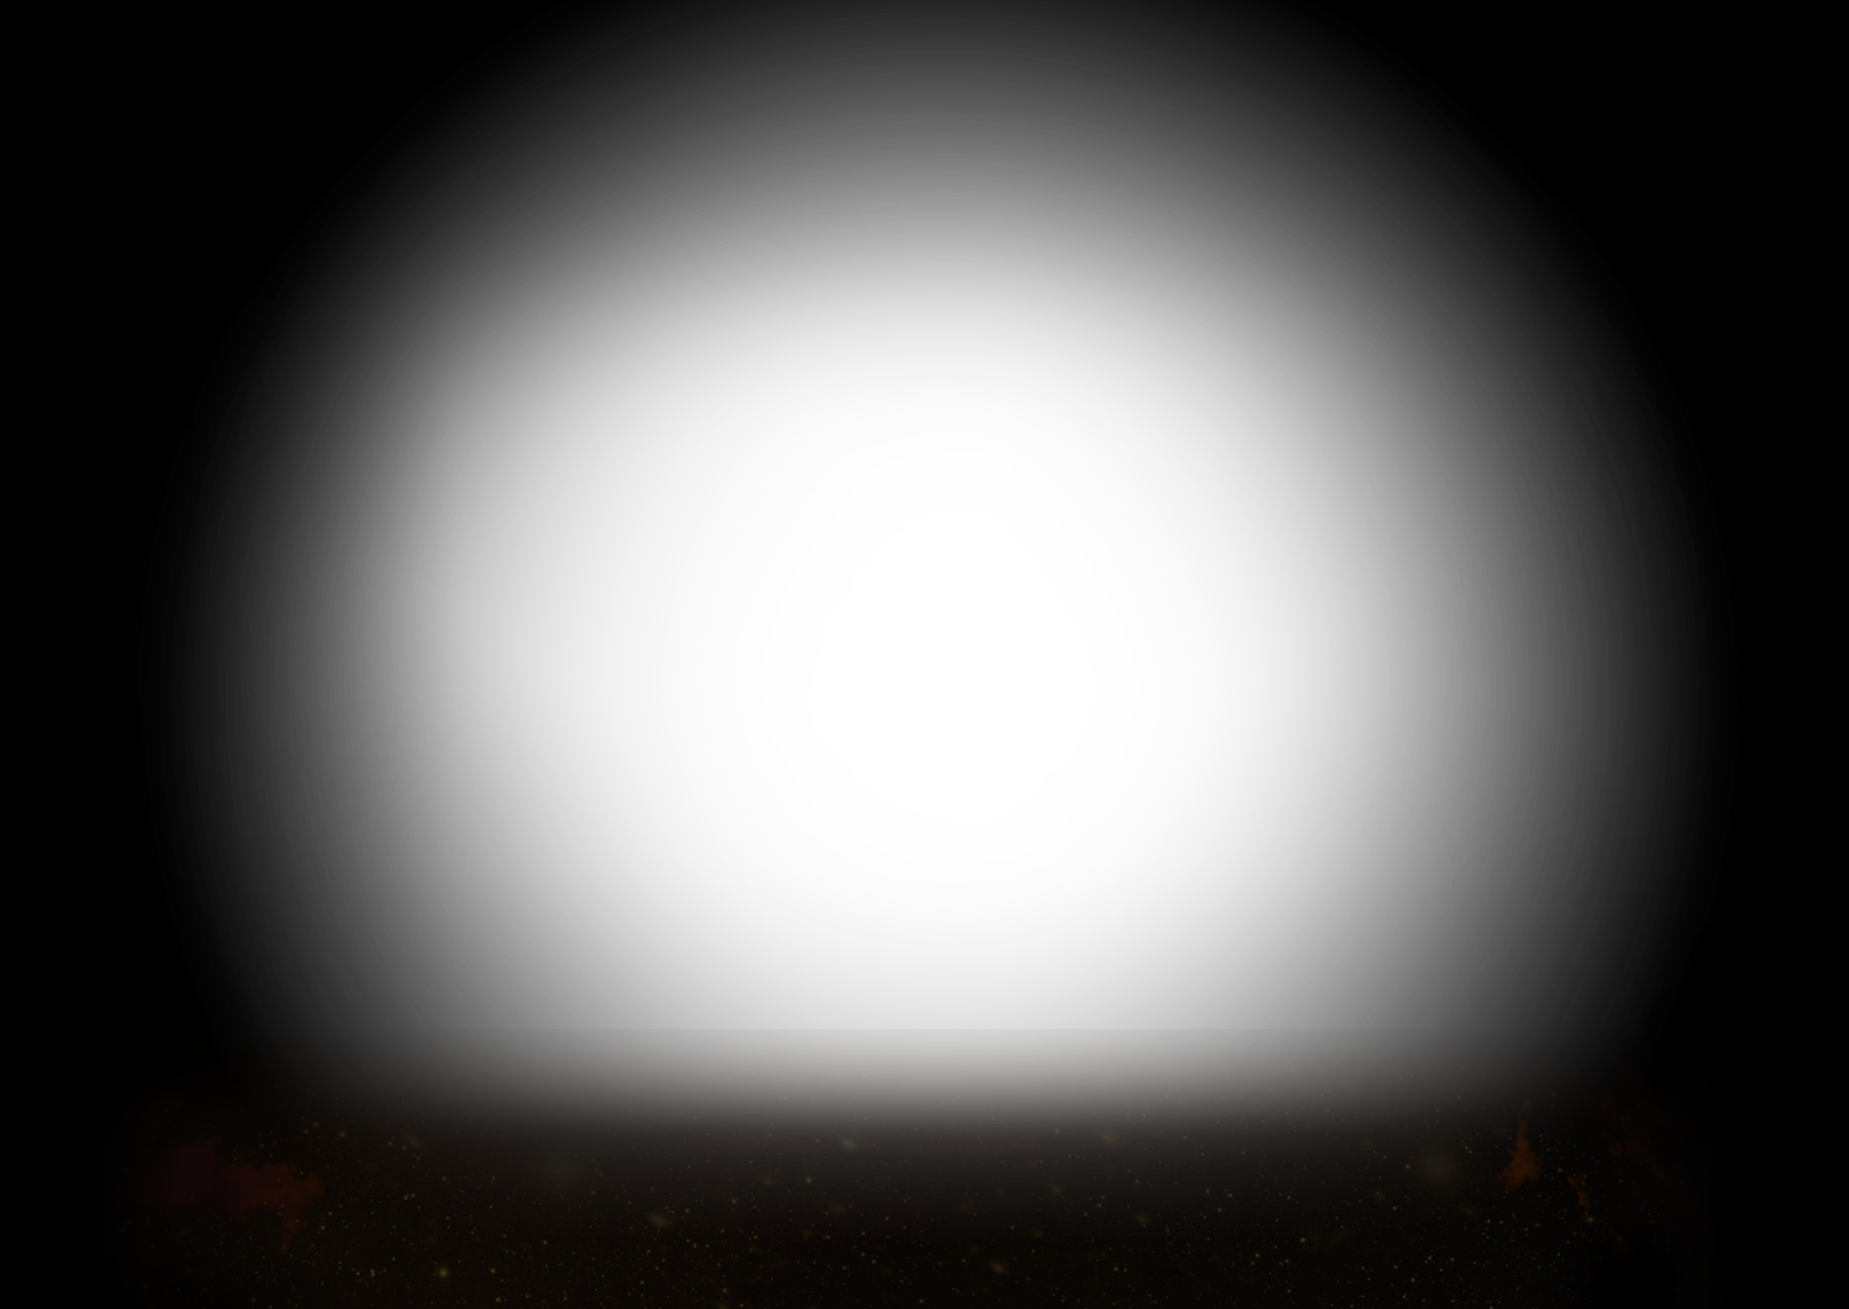 Black circle fade png transparent. Dota compendium event